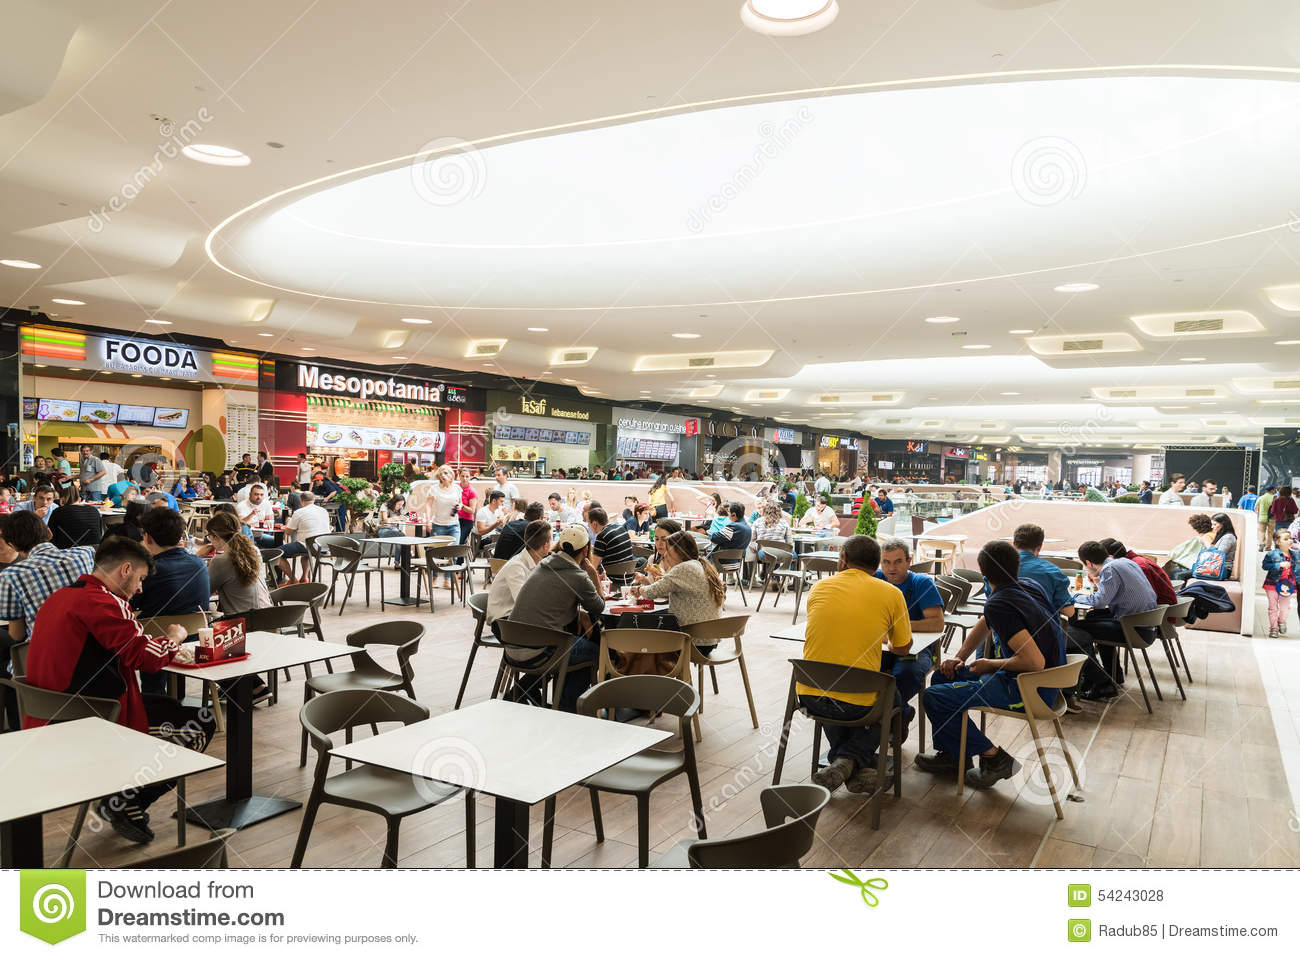 Restaurants, cafes, shopping centers: a selection of sites